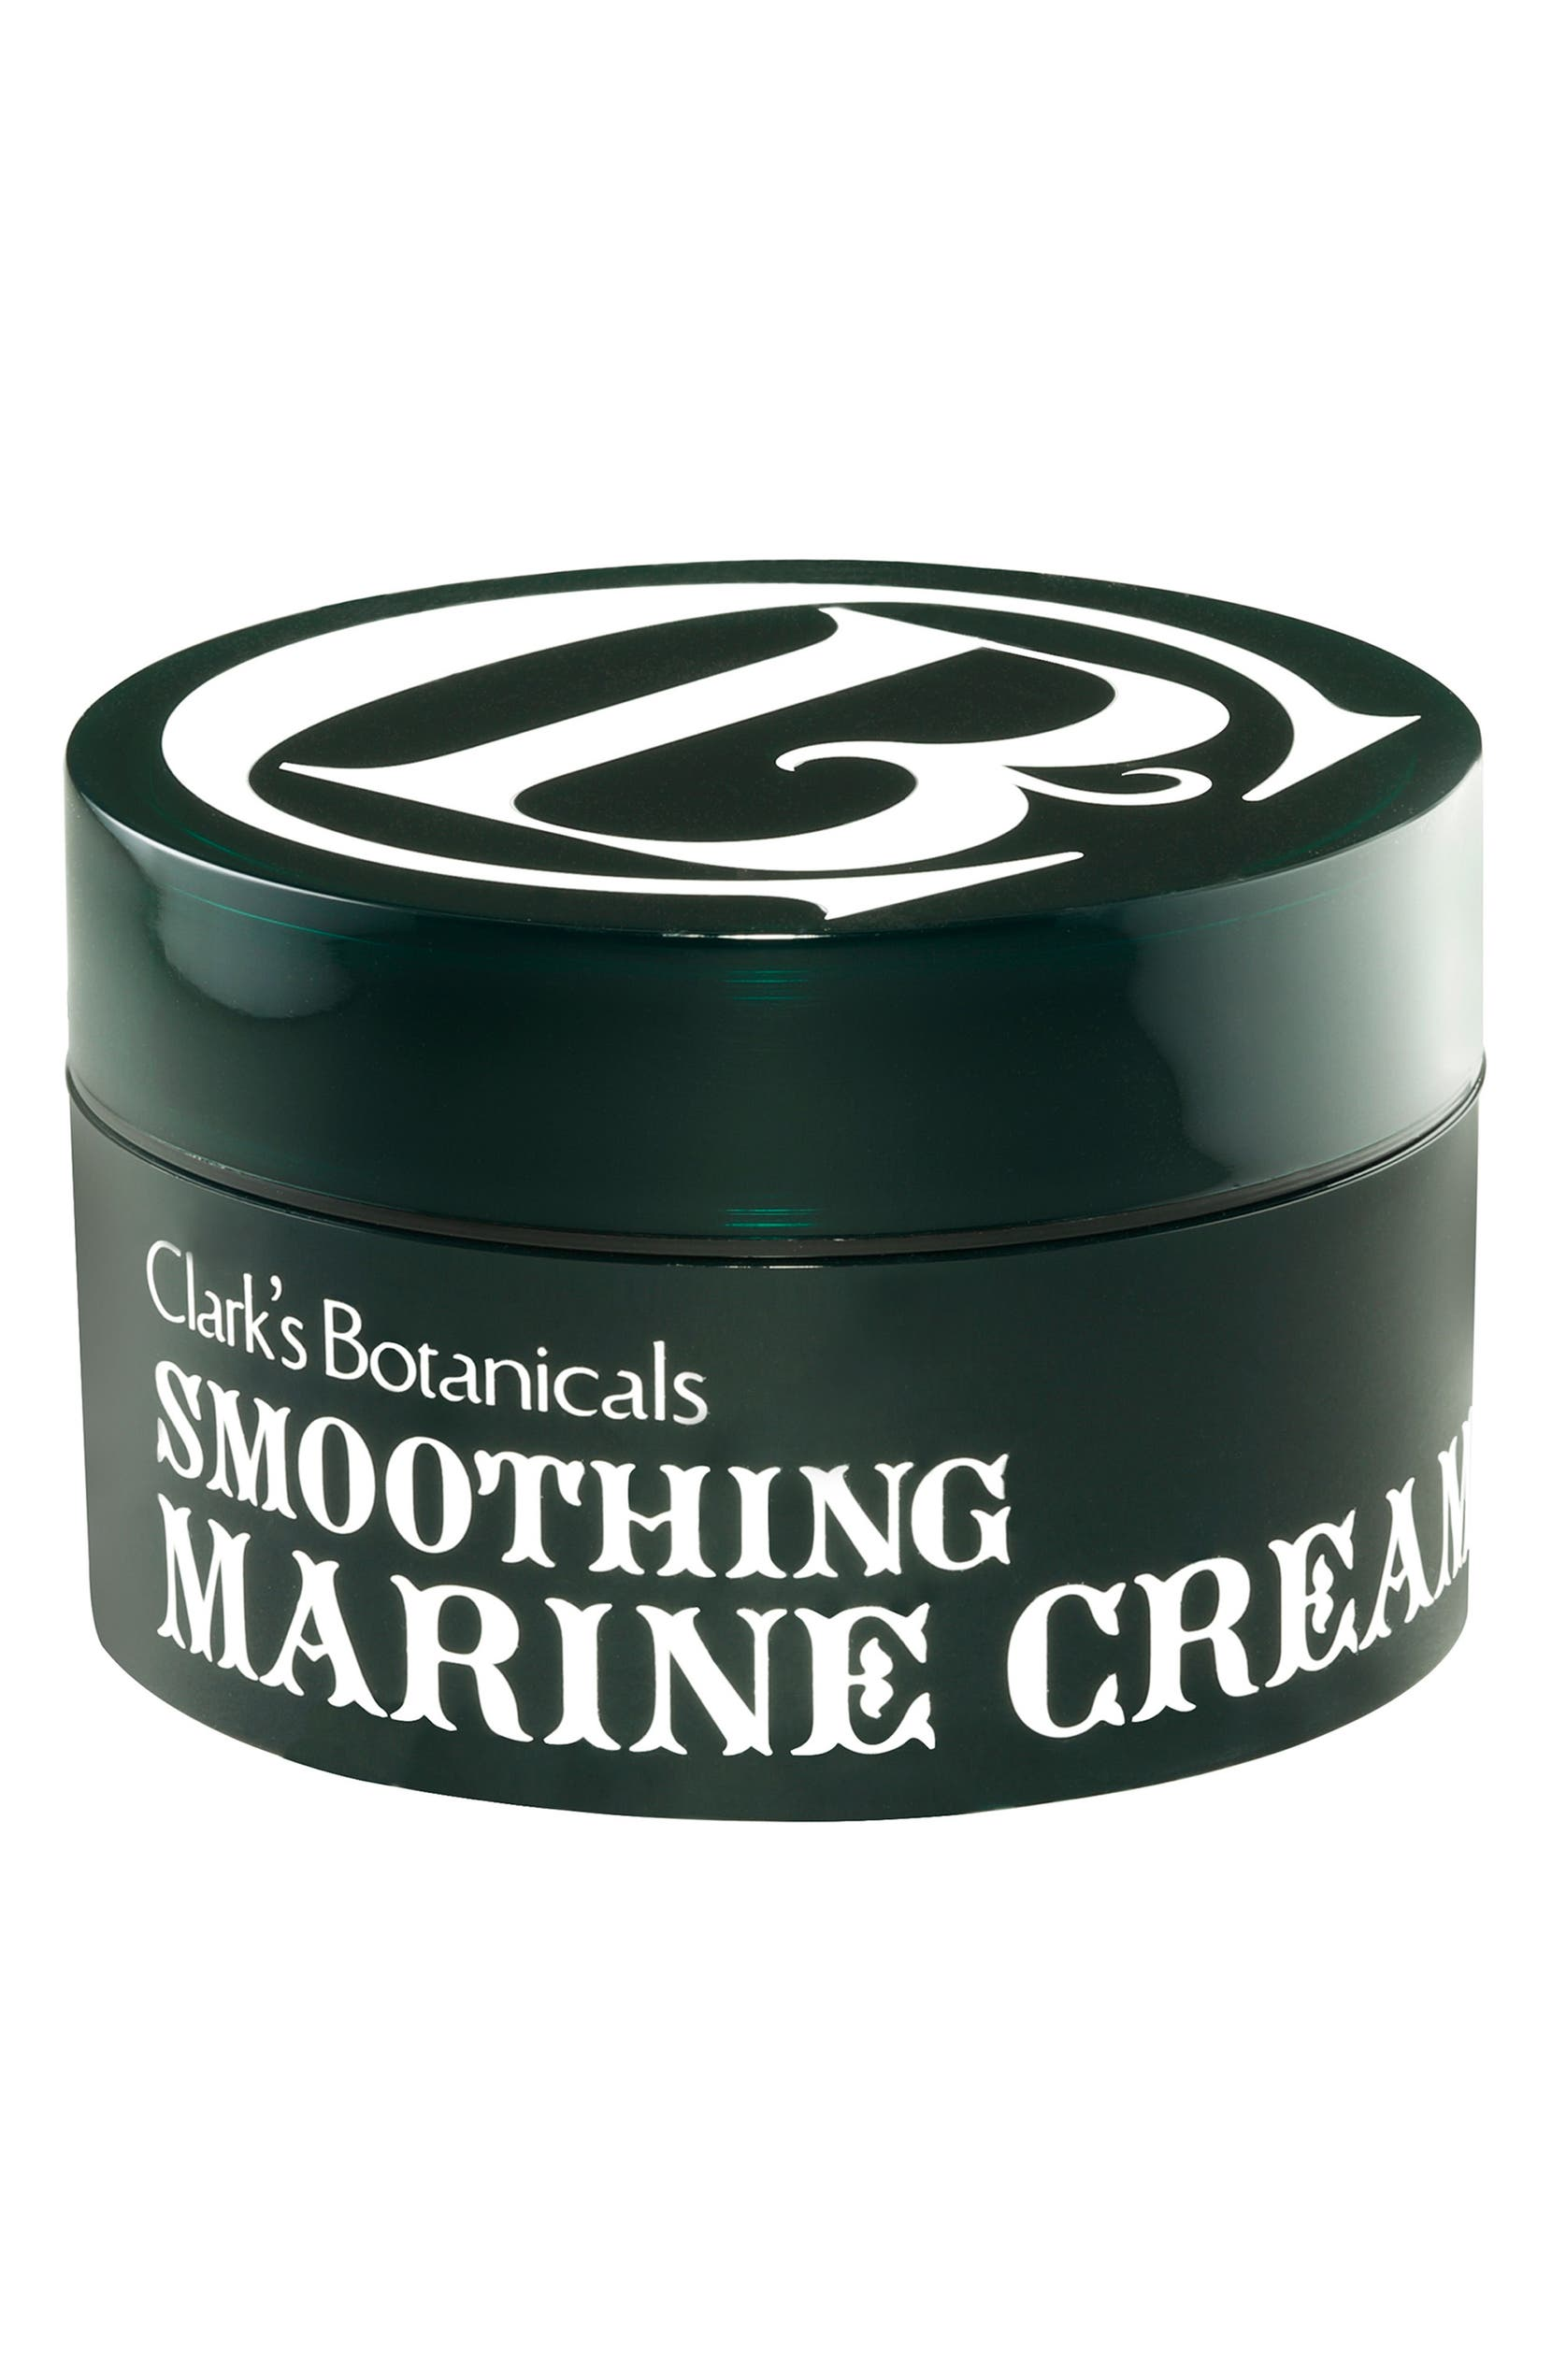 NK.apothecary Clark's Botanicals Smoothing Marine Cream | Nordstrom